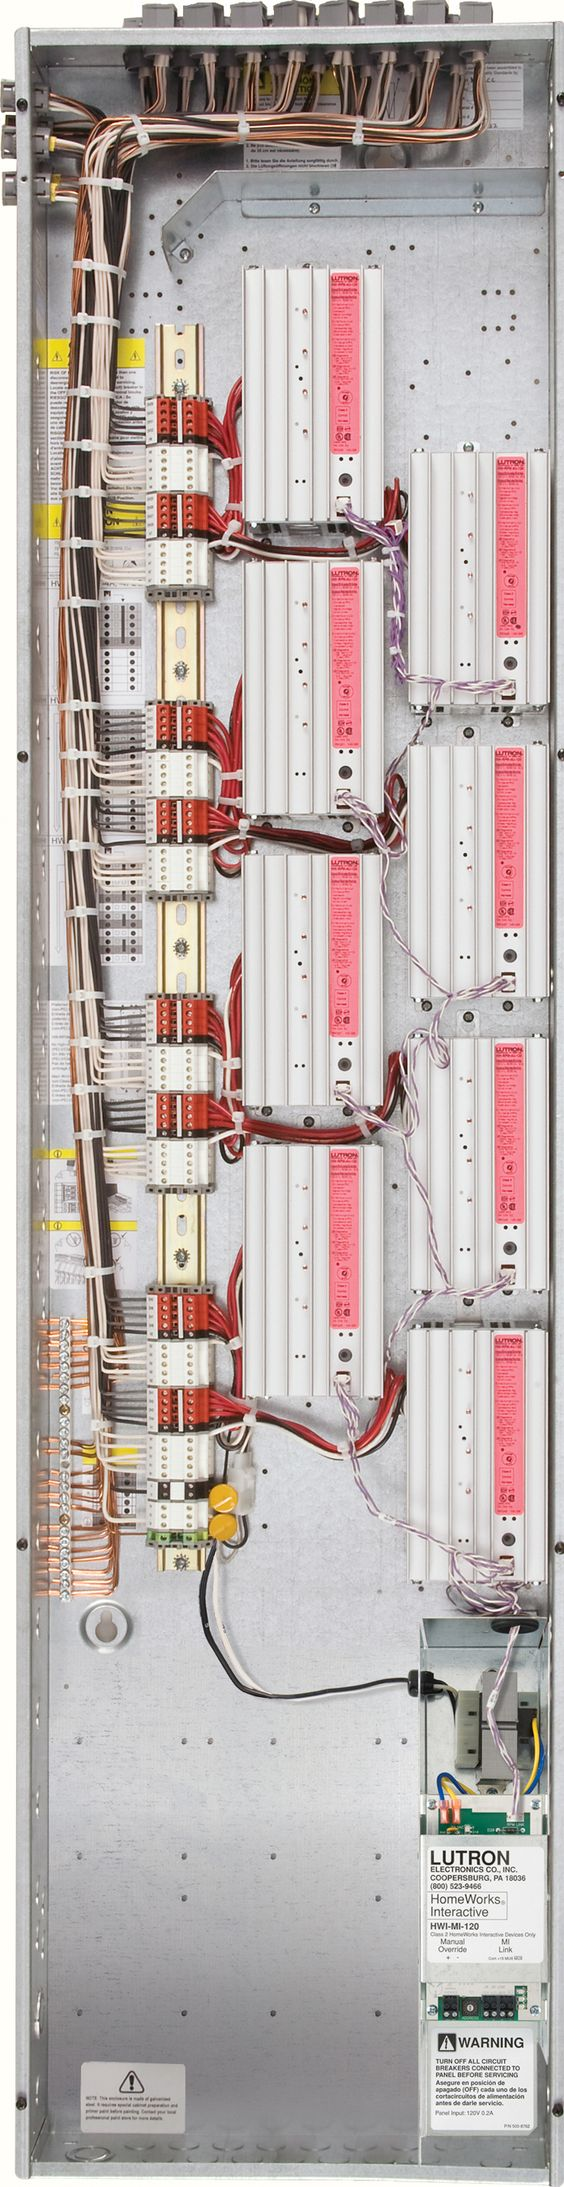 Lutron Homeworks Hard Wired Lighting Control Panel this is where – Lutron Homeworks Wiring-diagram